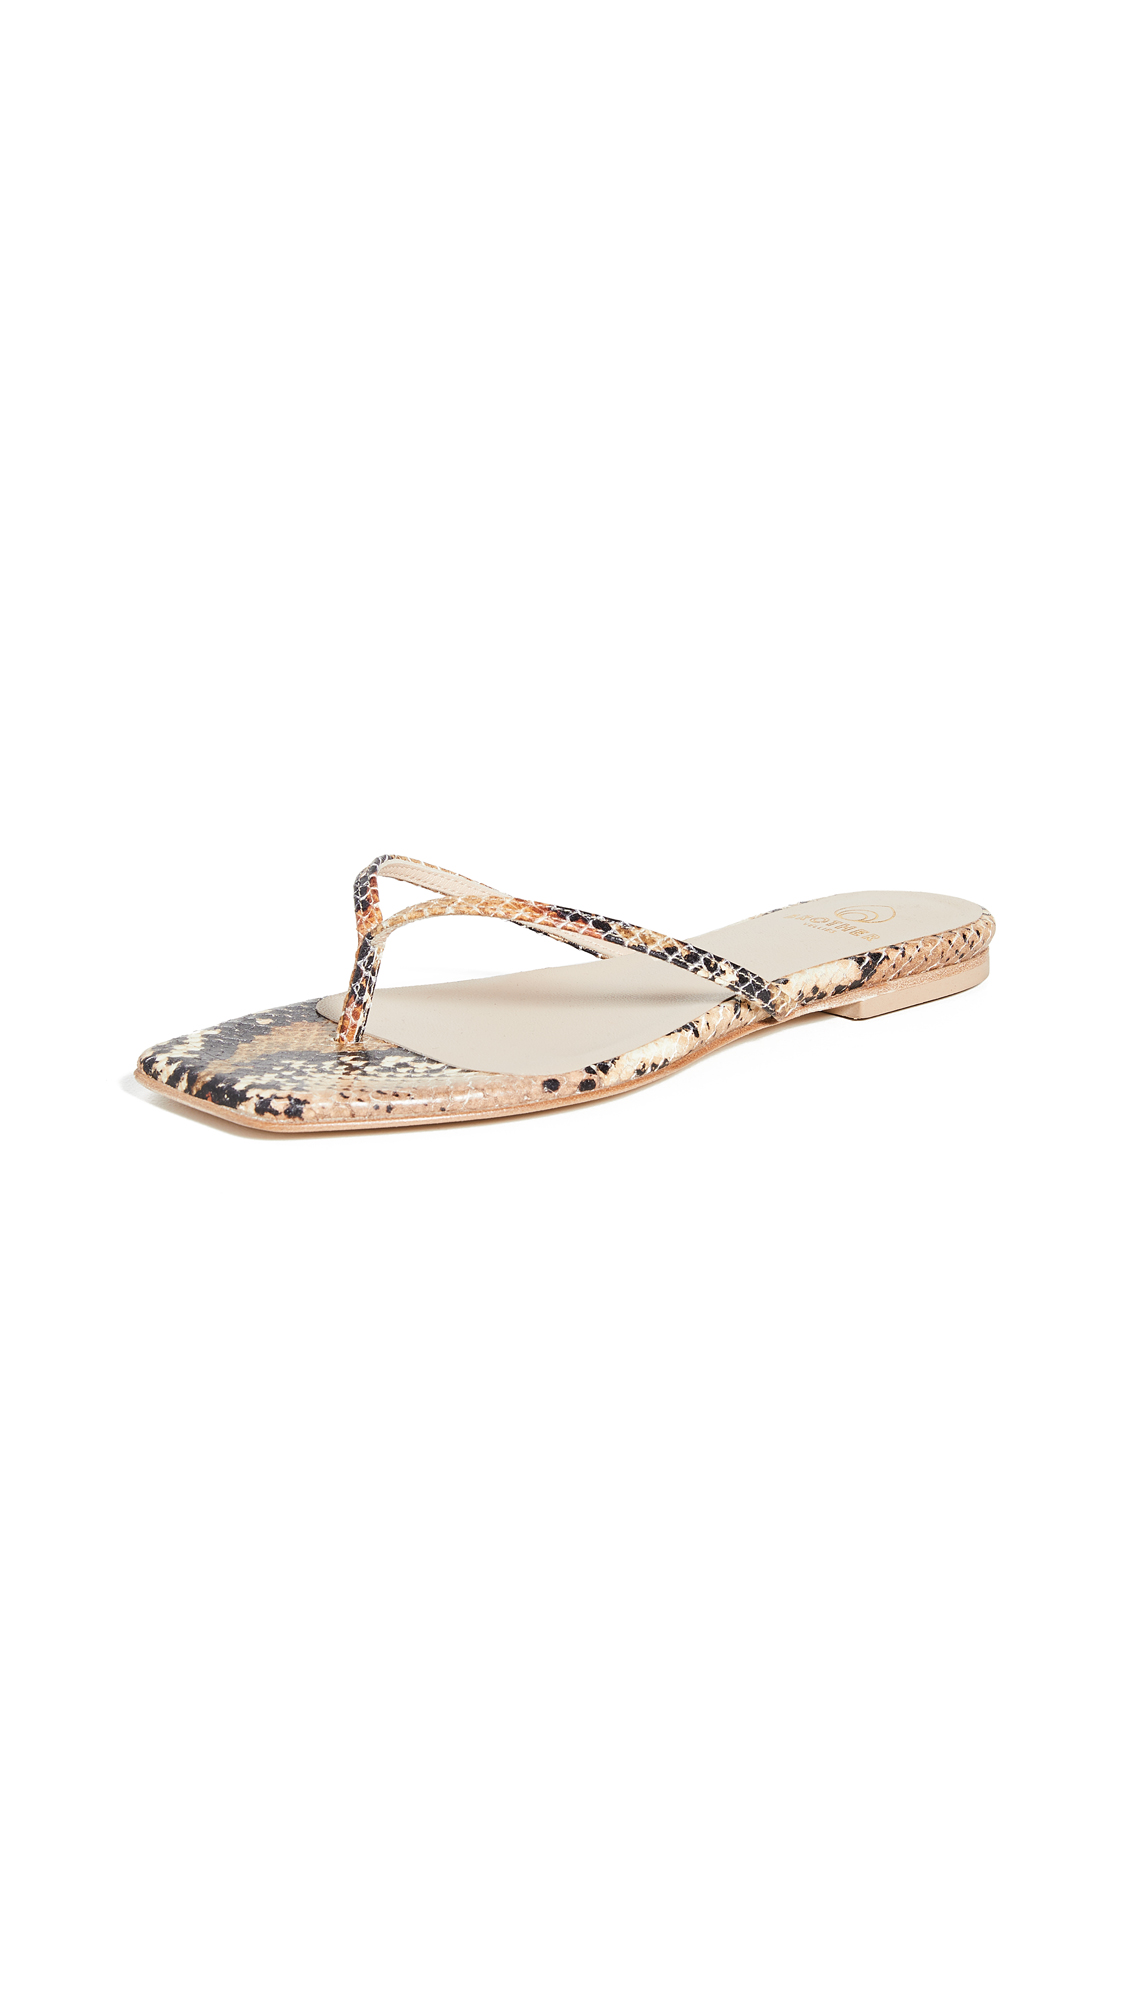 Brother Vellies Thong Sandals – 30% Off Sale